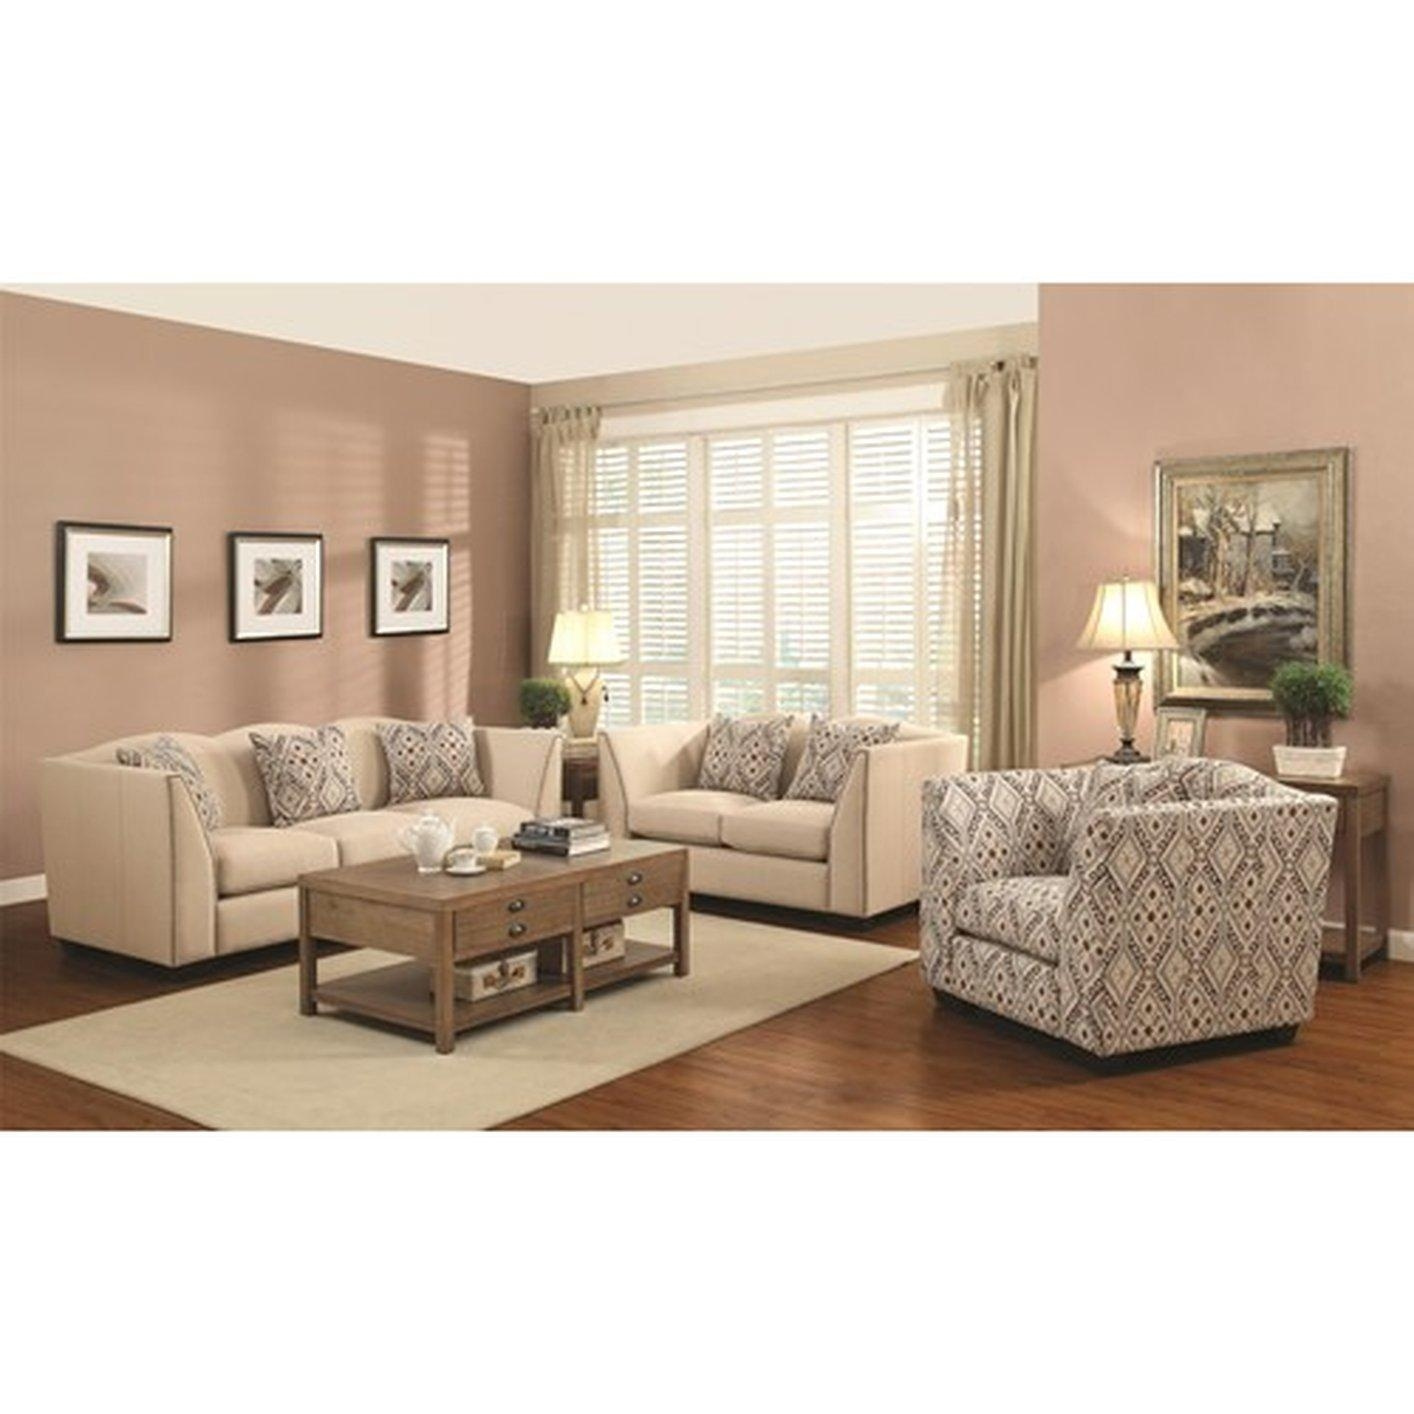 Siana Beige Fabric Accent Chair – Steal A Sofa Furniture Outlet With Regard To Accent Sofa Chairs (Image 19 of 20)